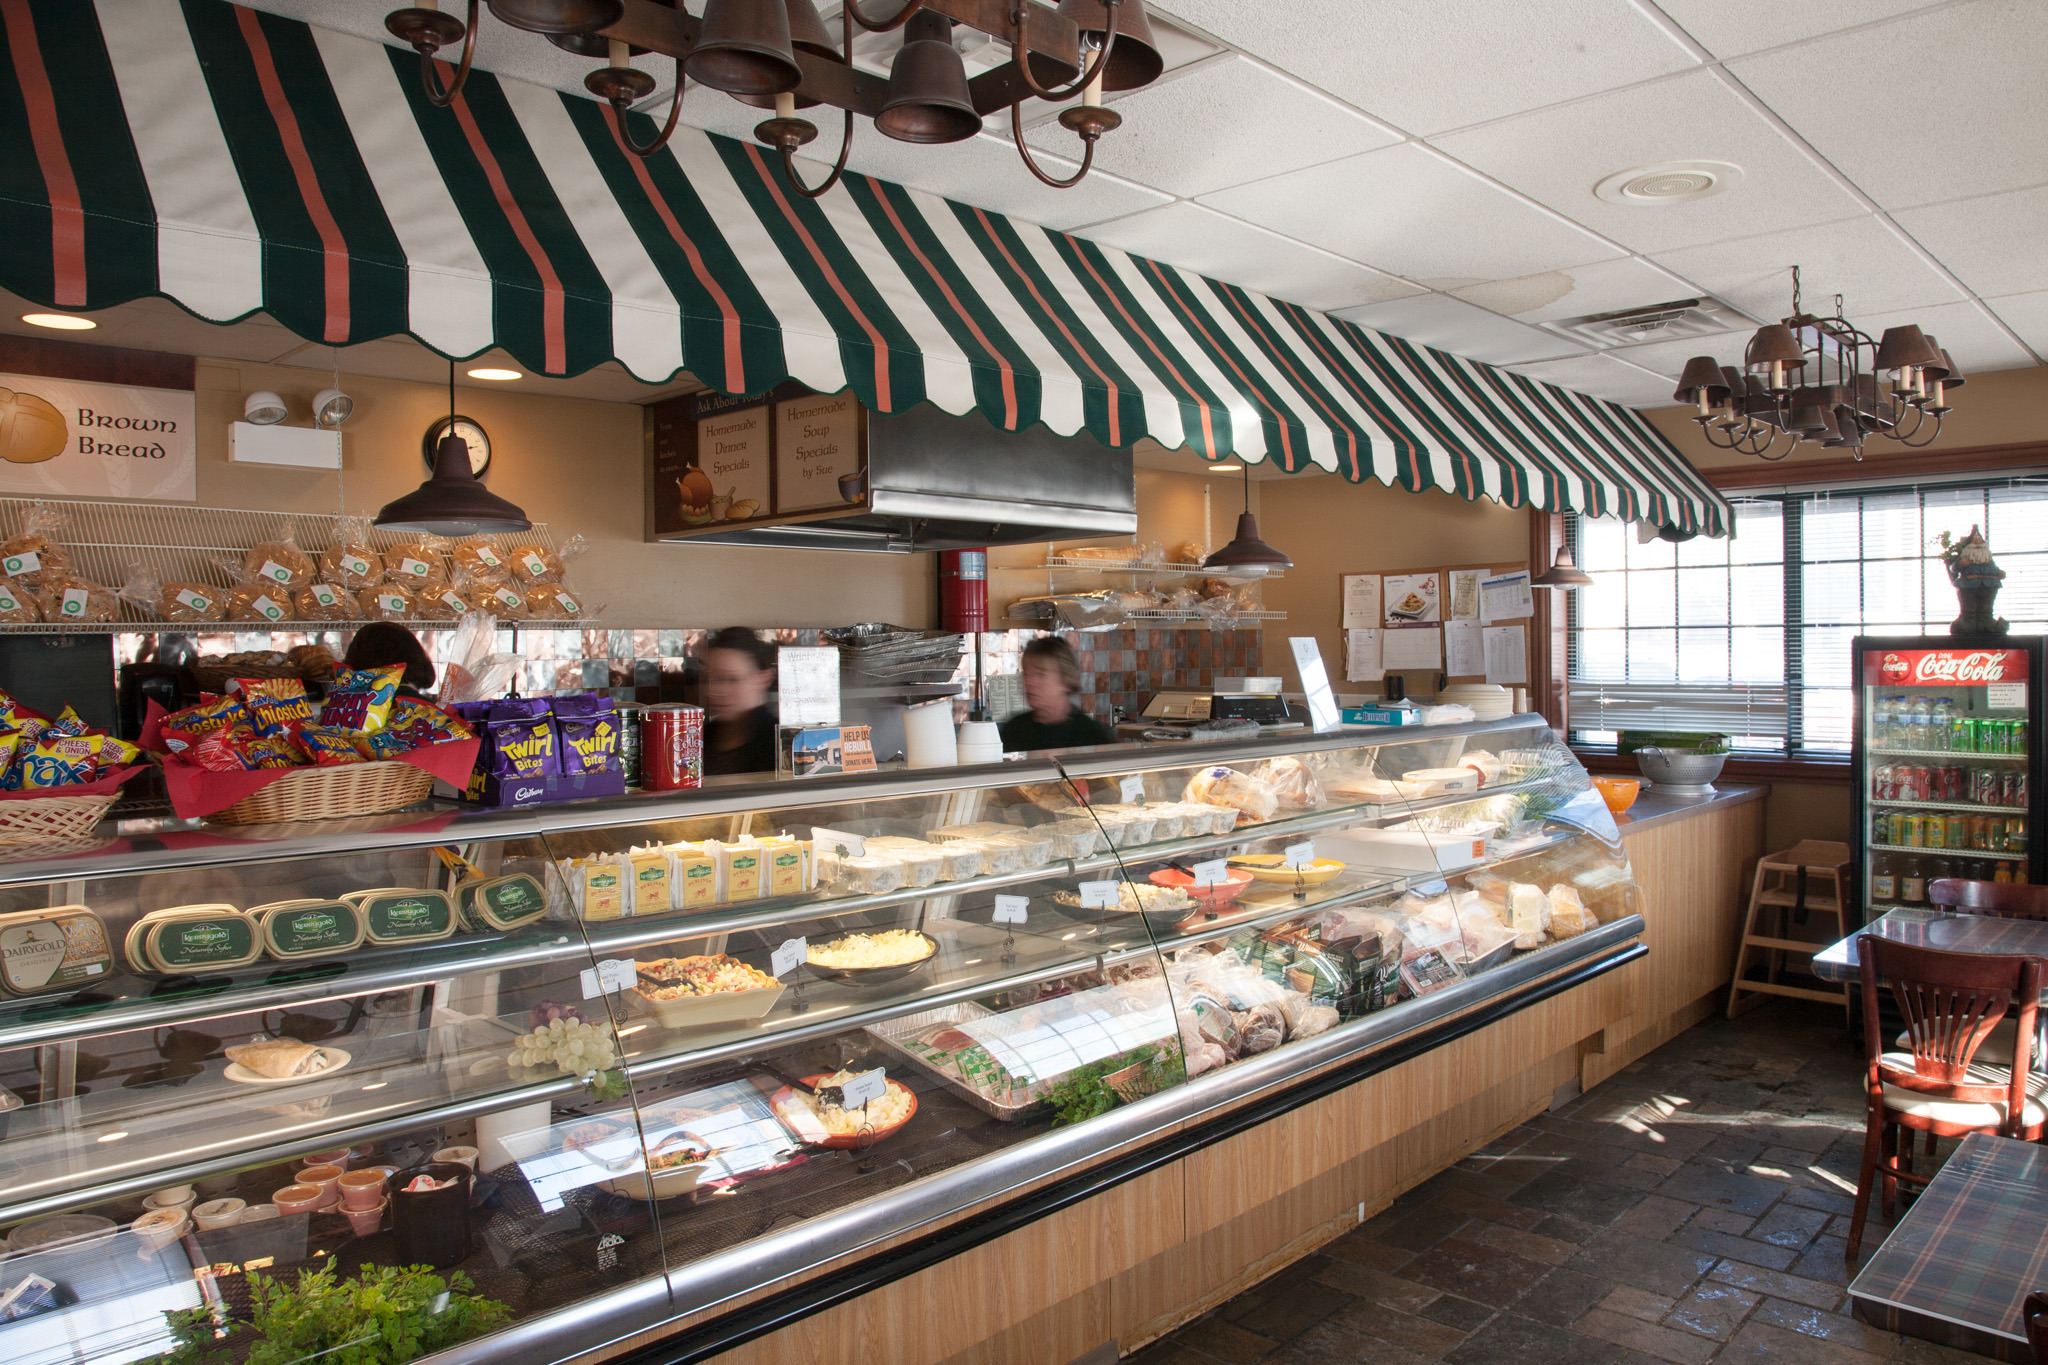 O'Connor's Deli & Market